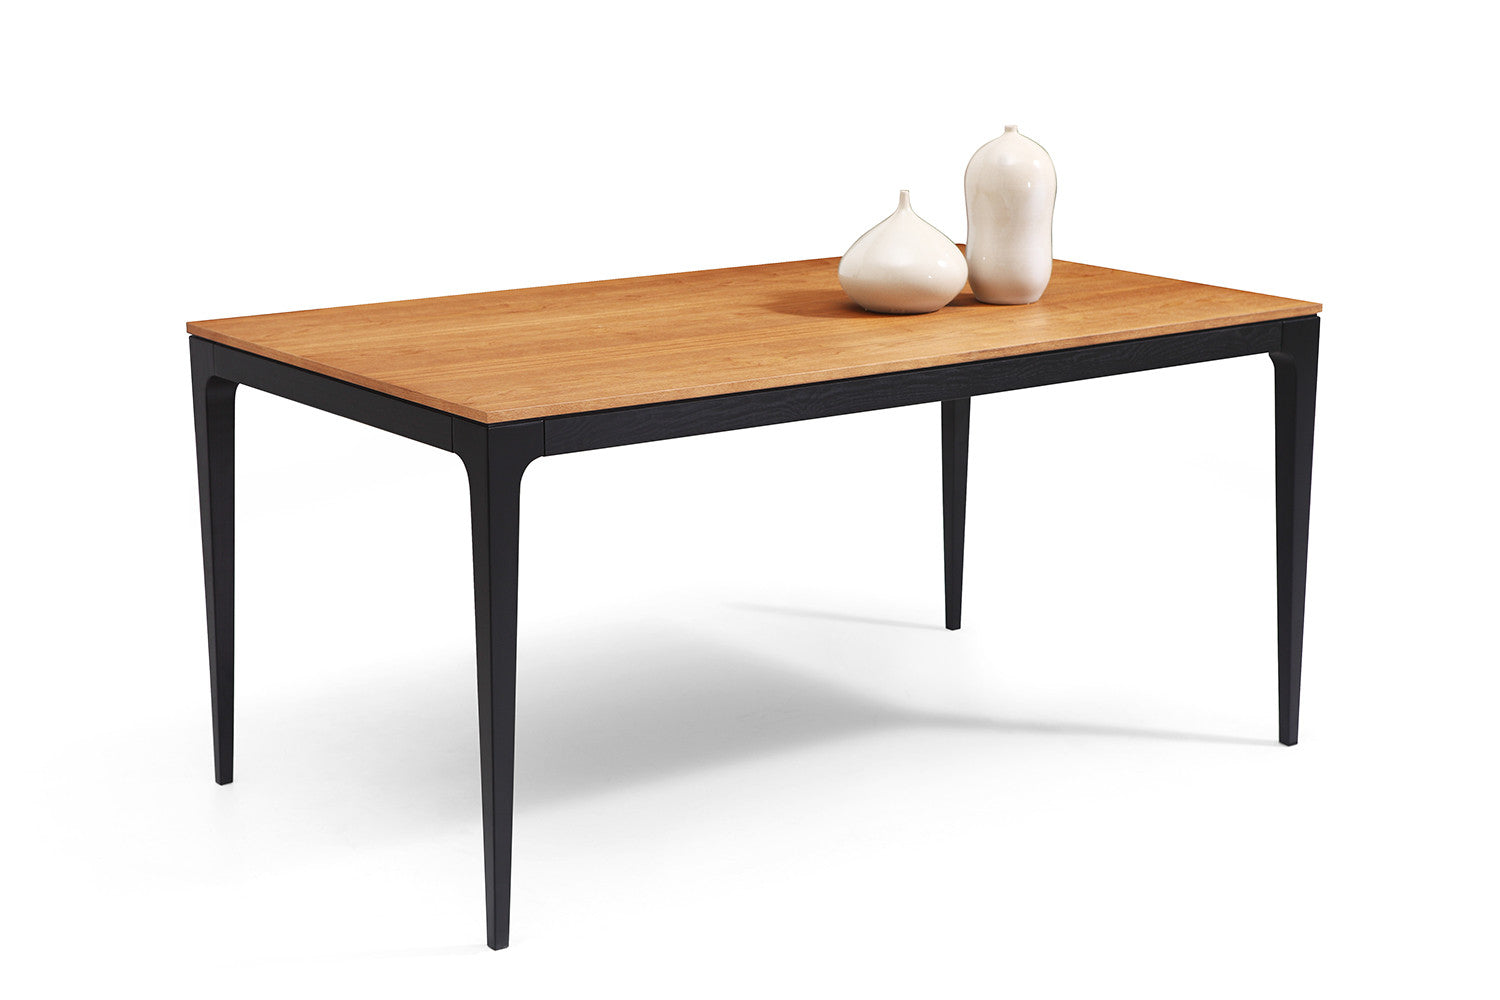 Table a manger design bois for Table salle manger ronde extensible design